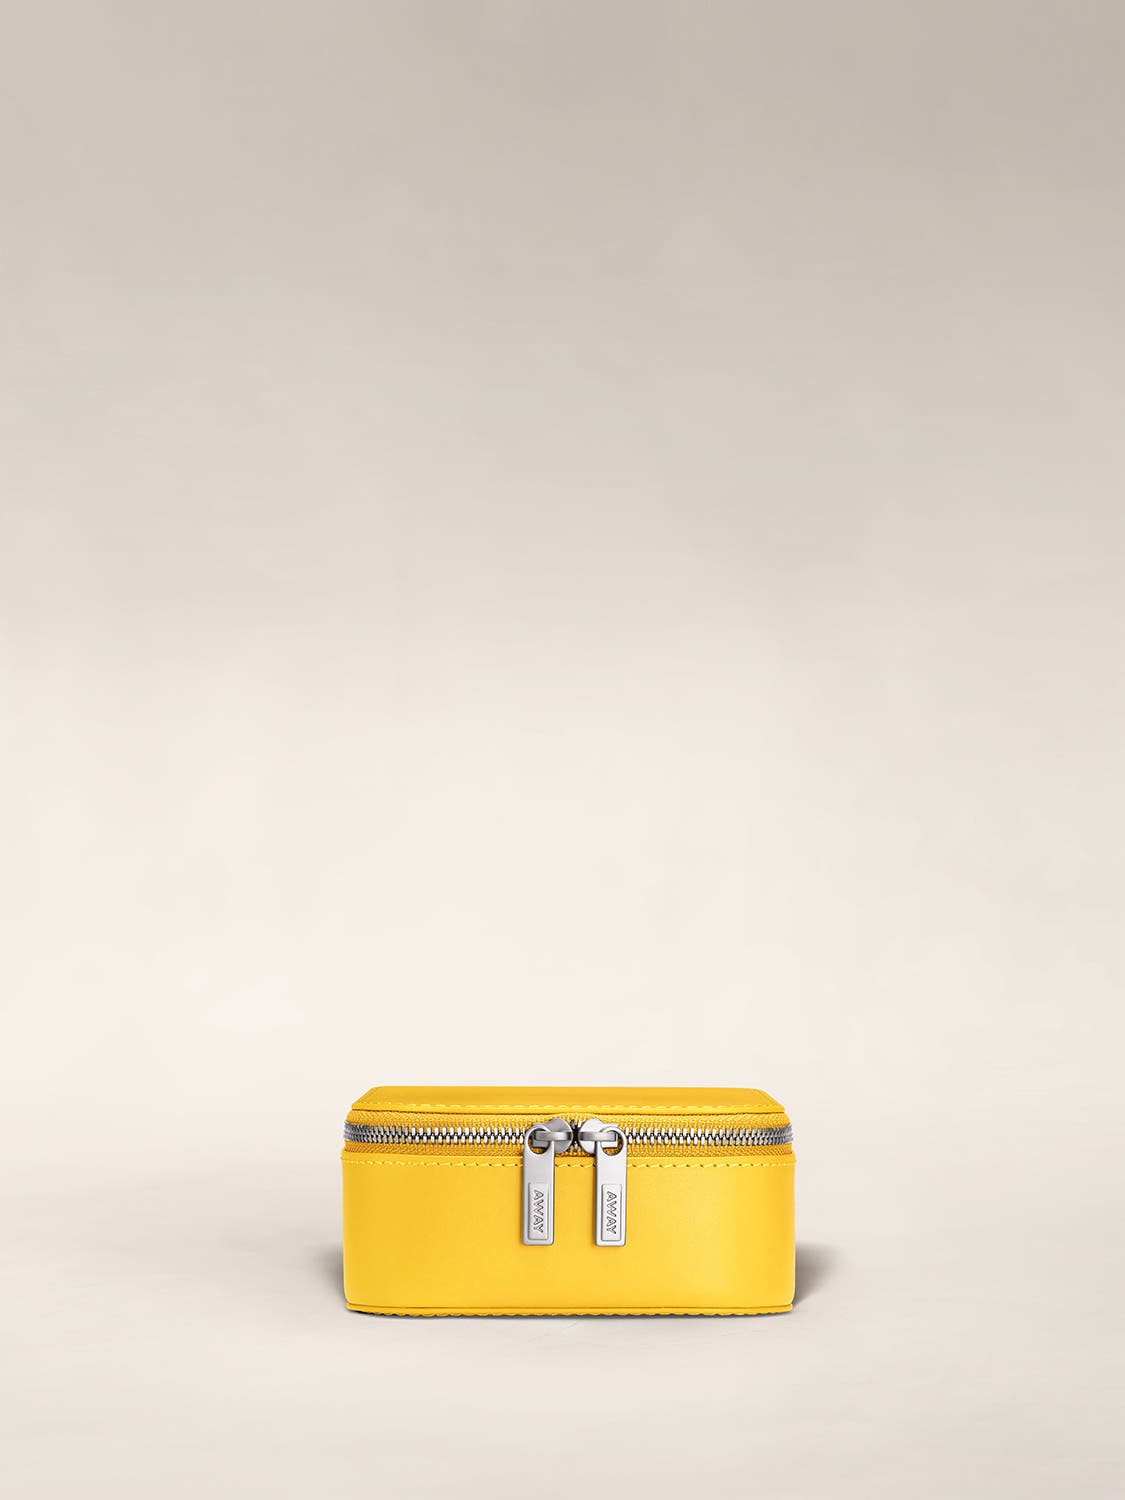 Front view of a golden yellow jewelry box zipped with Away logo on zip.